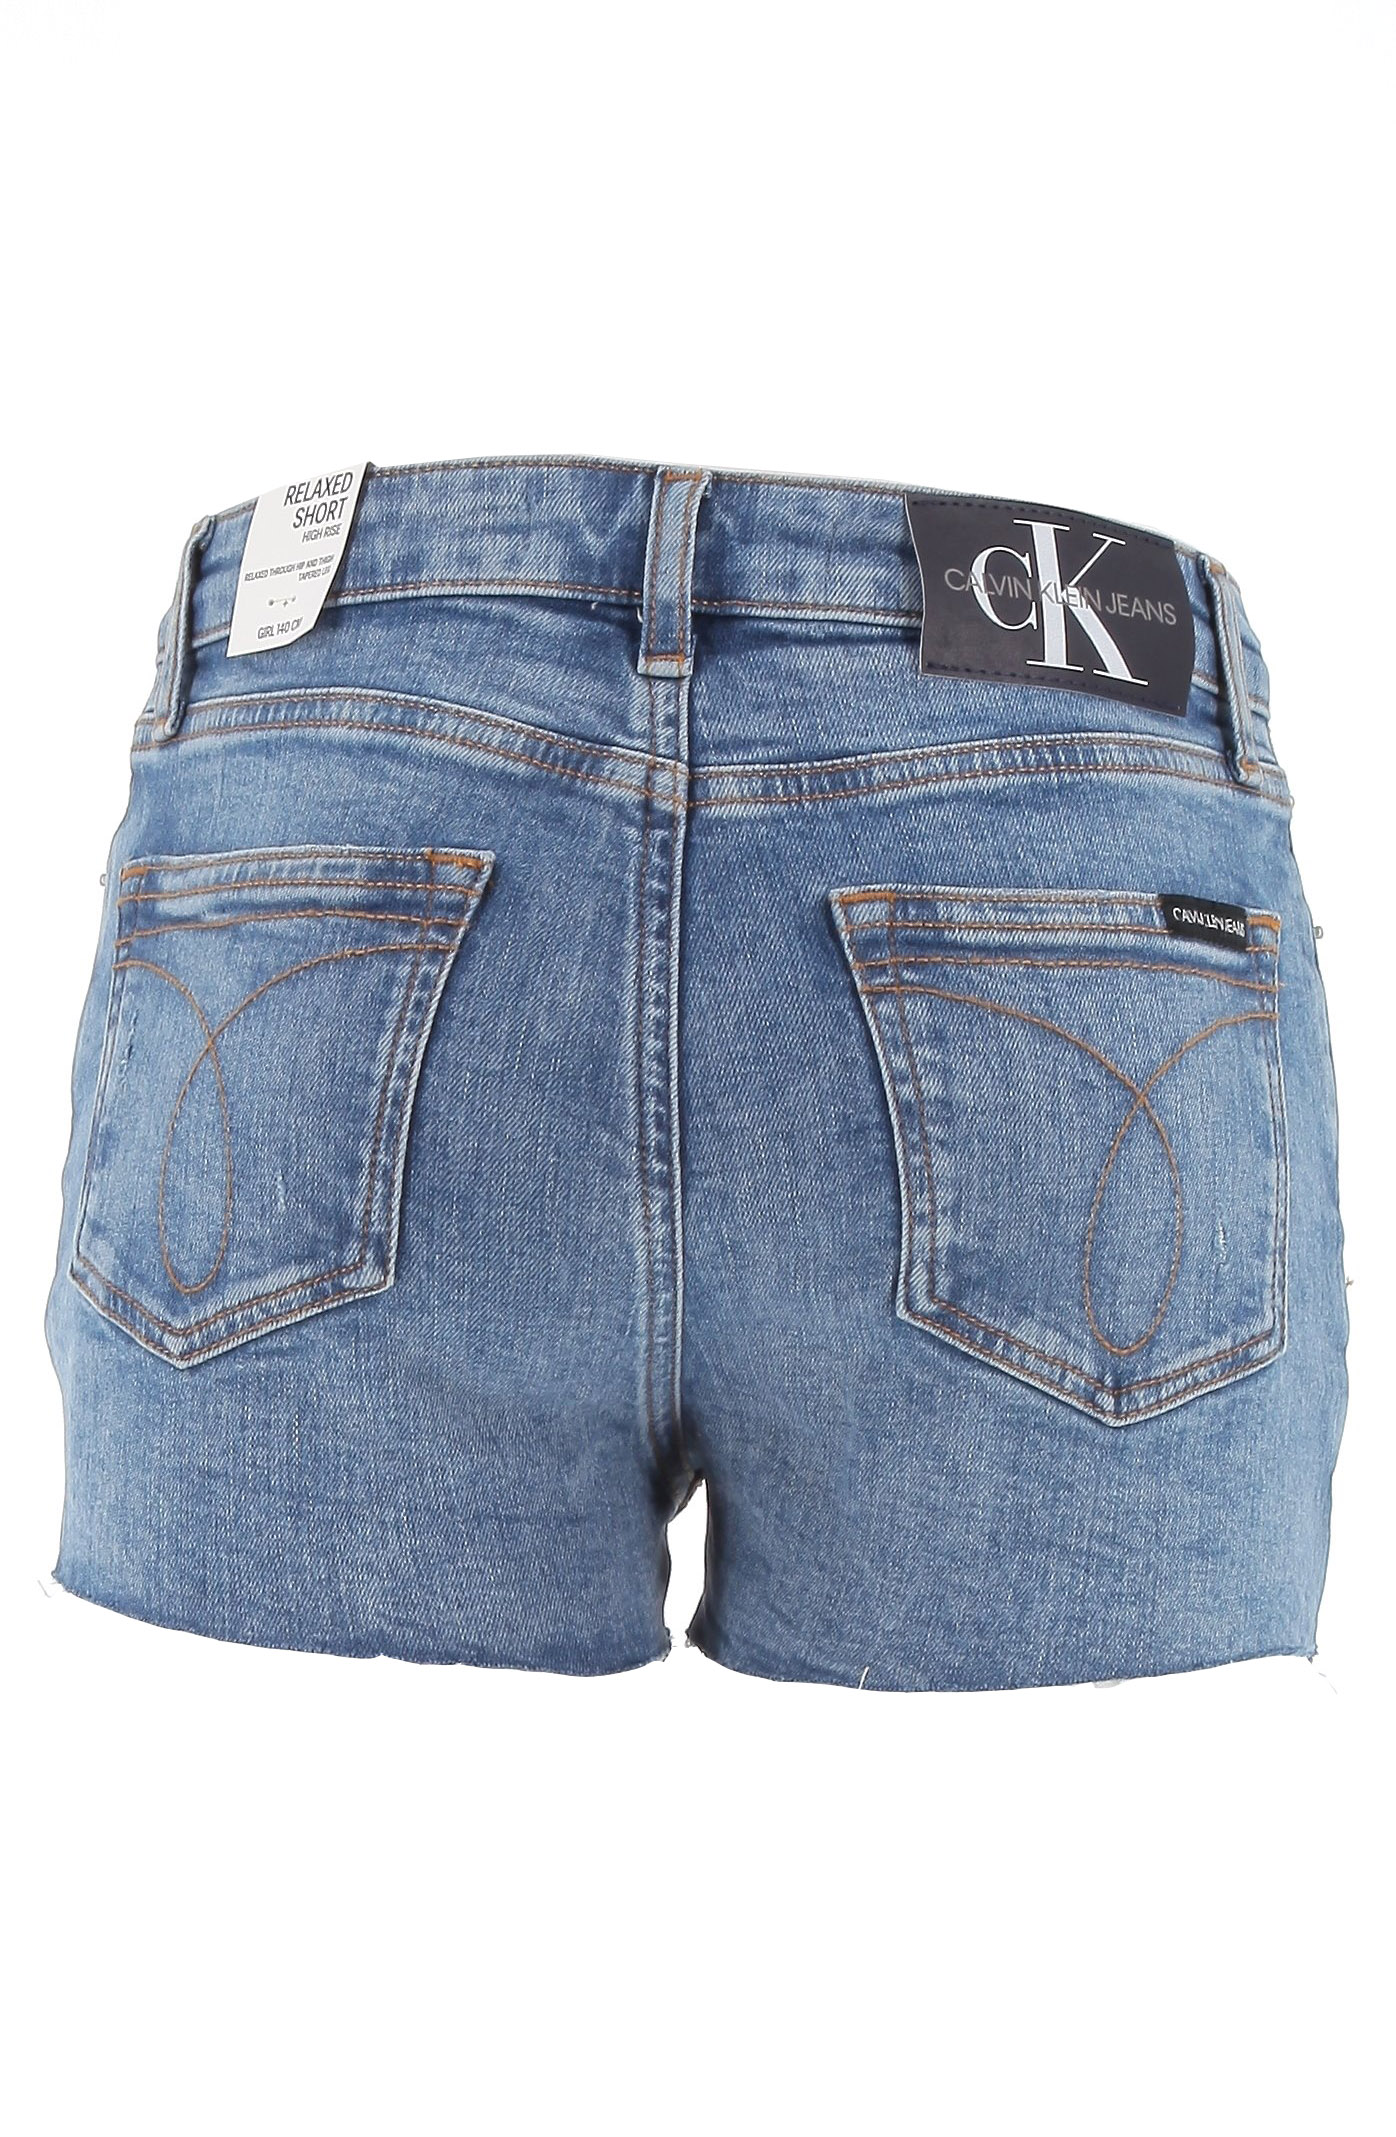 Shorts jeans CALVIN KLEIN | Shorts | IG0IG009731A4